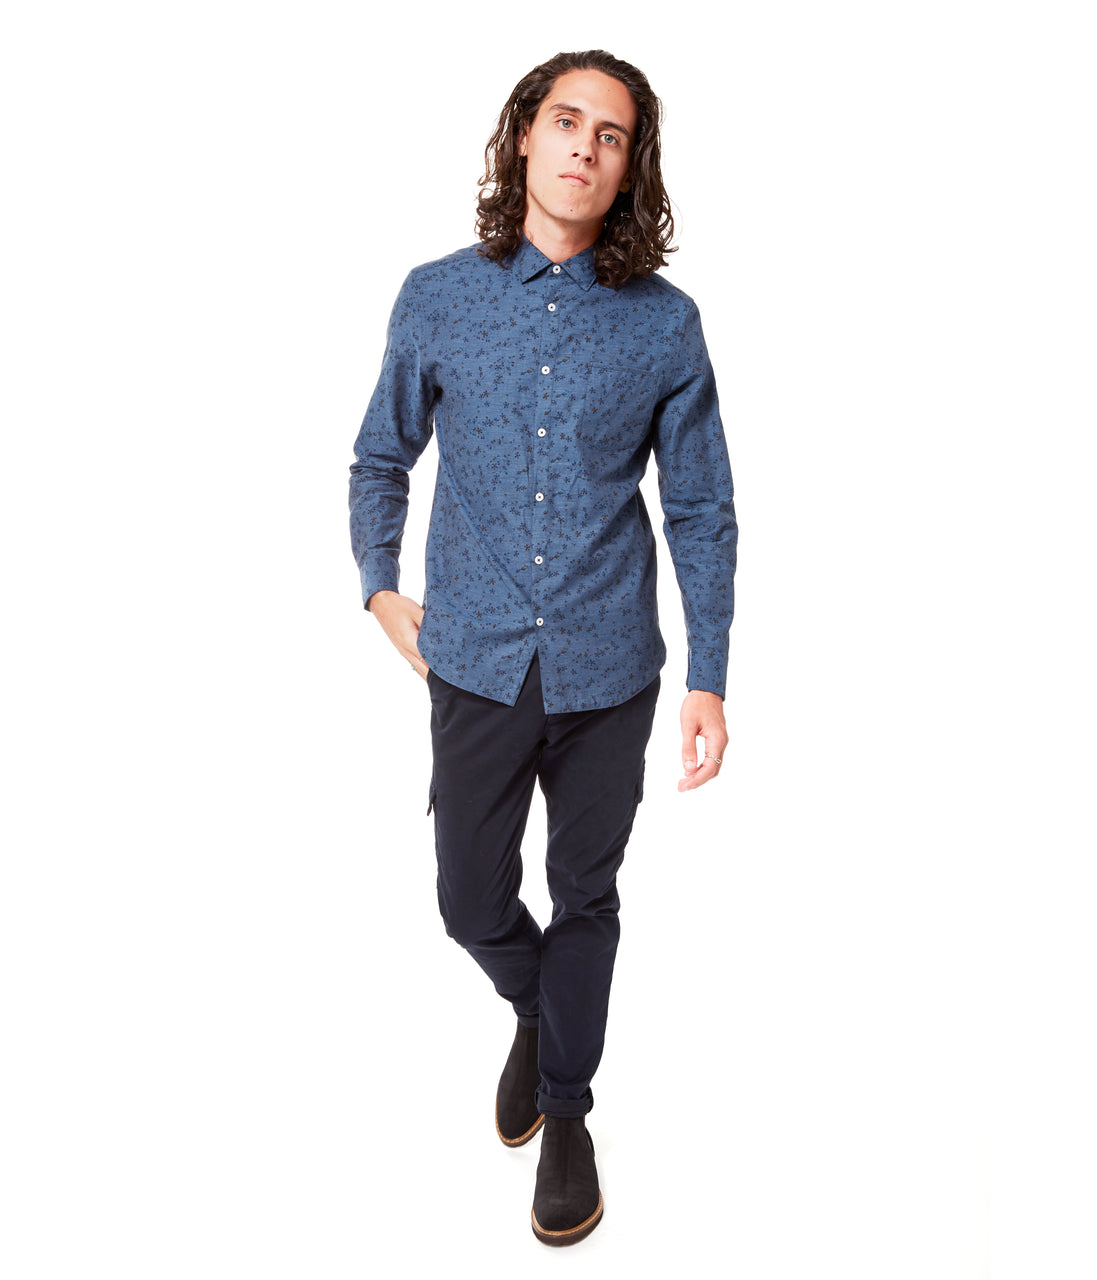 Indigo Italian Daisy On-Point Print Shirt - Good Man Brand - Indigo Italian Daisy On-Point Print Shirt